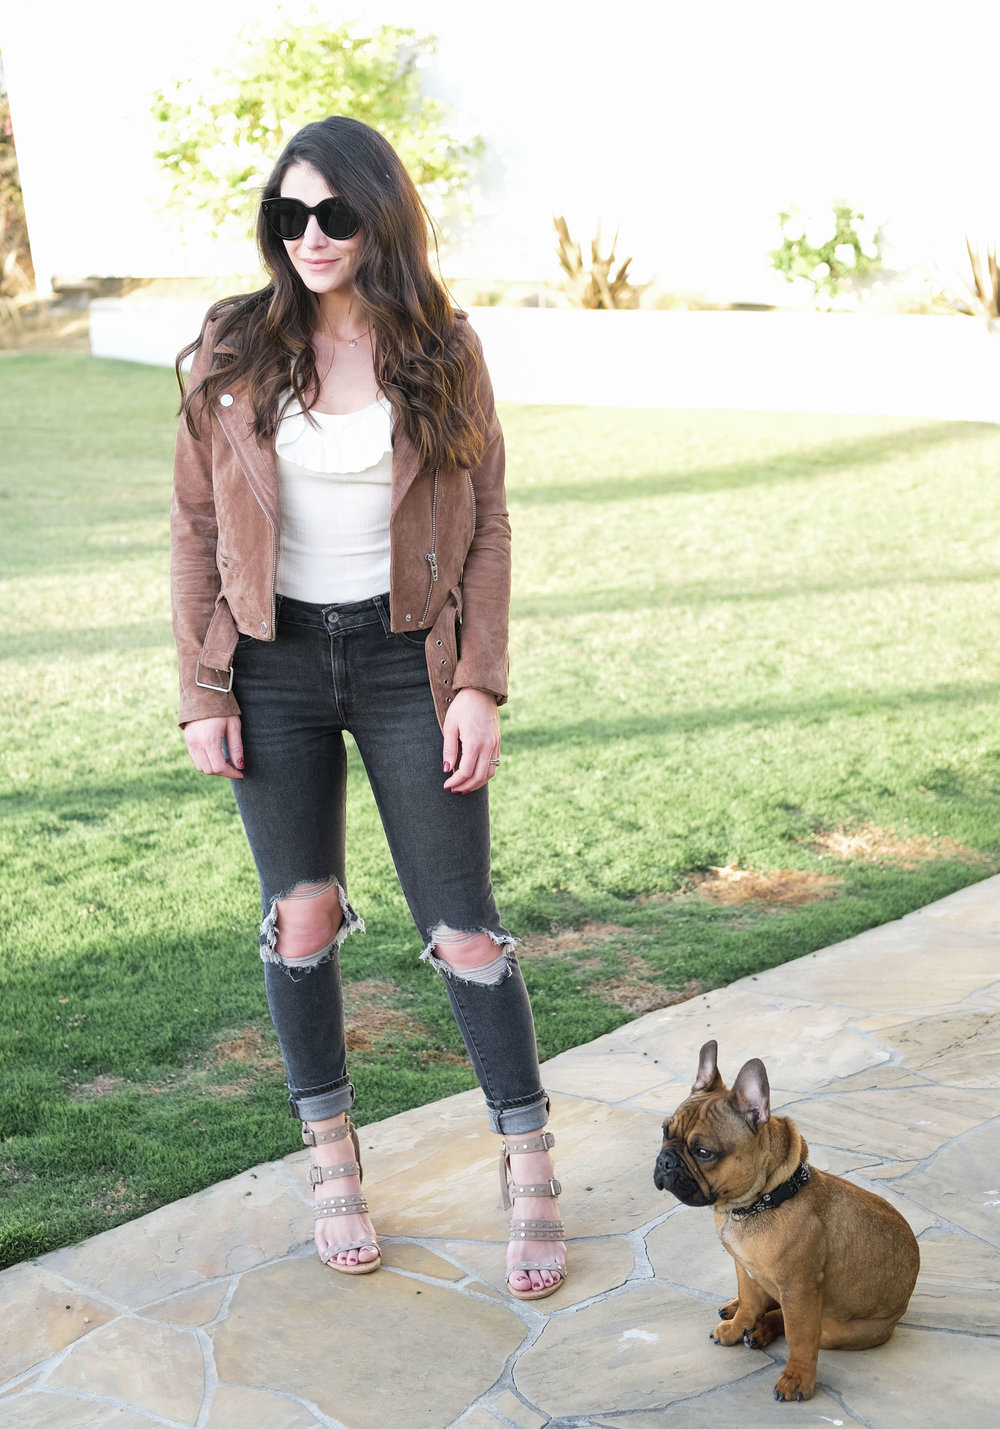 Free People Uh Huh Bodysuit, Levi's 721 high waisted jeans, Dolce Vita Effie block heel sandal in taupe, Celine Audrey sunglasses, and Blank NYC suede moto jacket. Cute outfit for spring vacation in California.